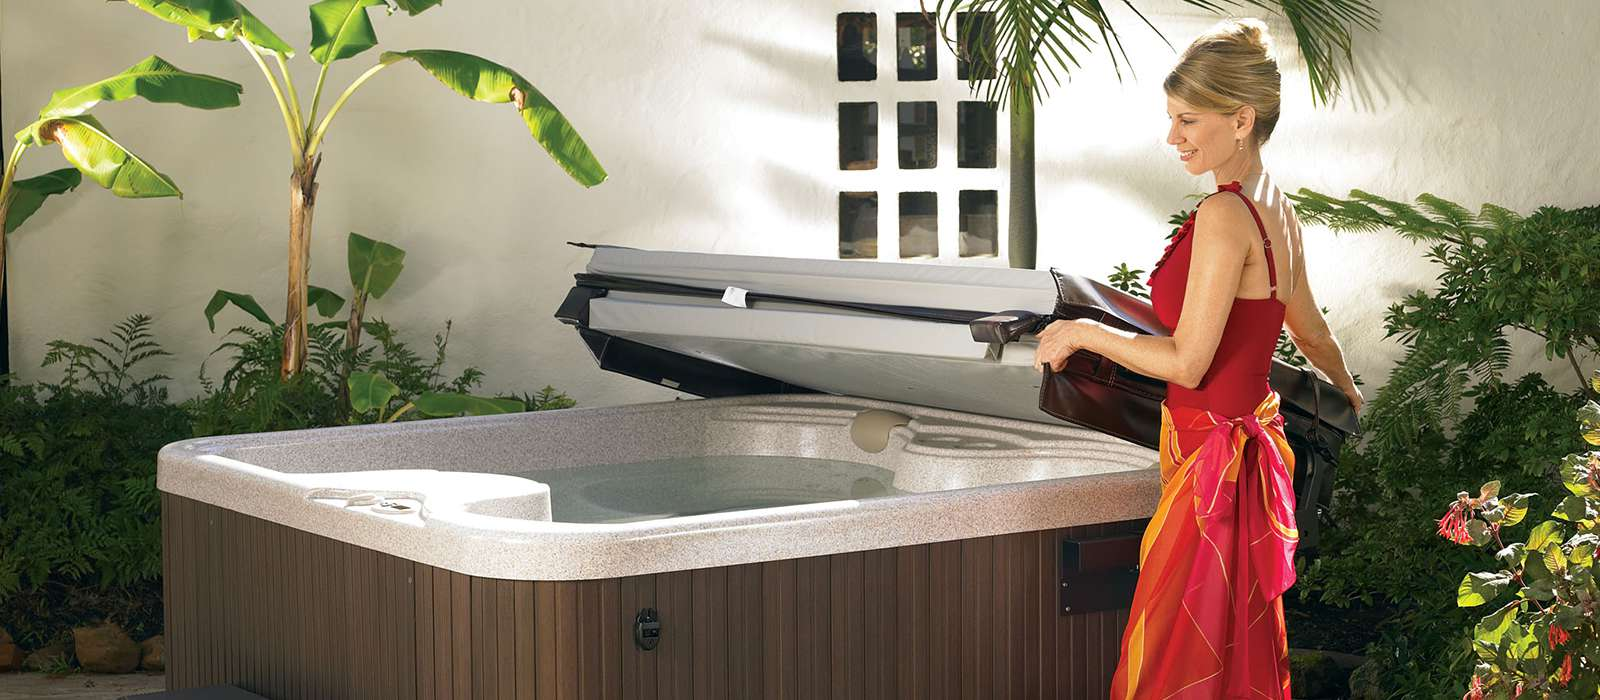 The SX 3 person hot tub provides the same unique features found in much larger spas, with a slim profile perfect for smaller spaces.